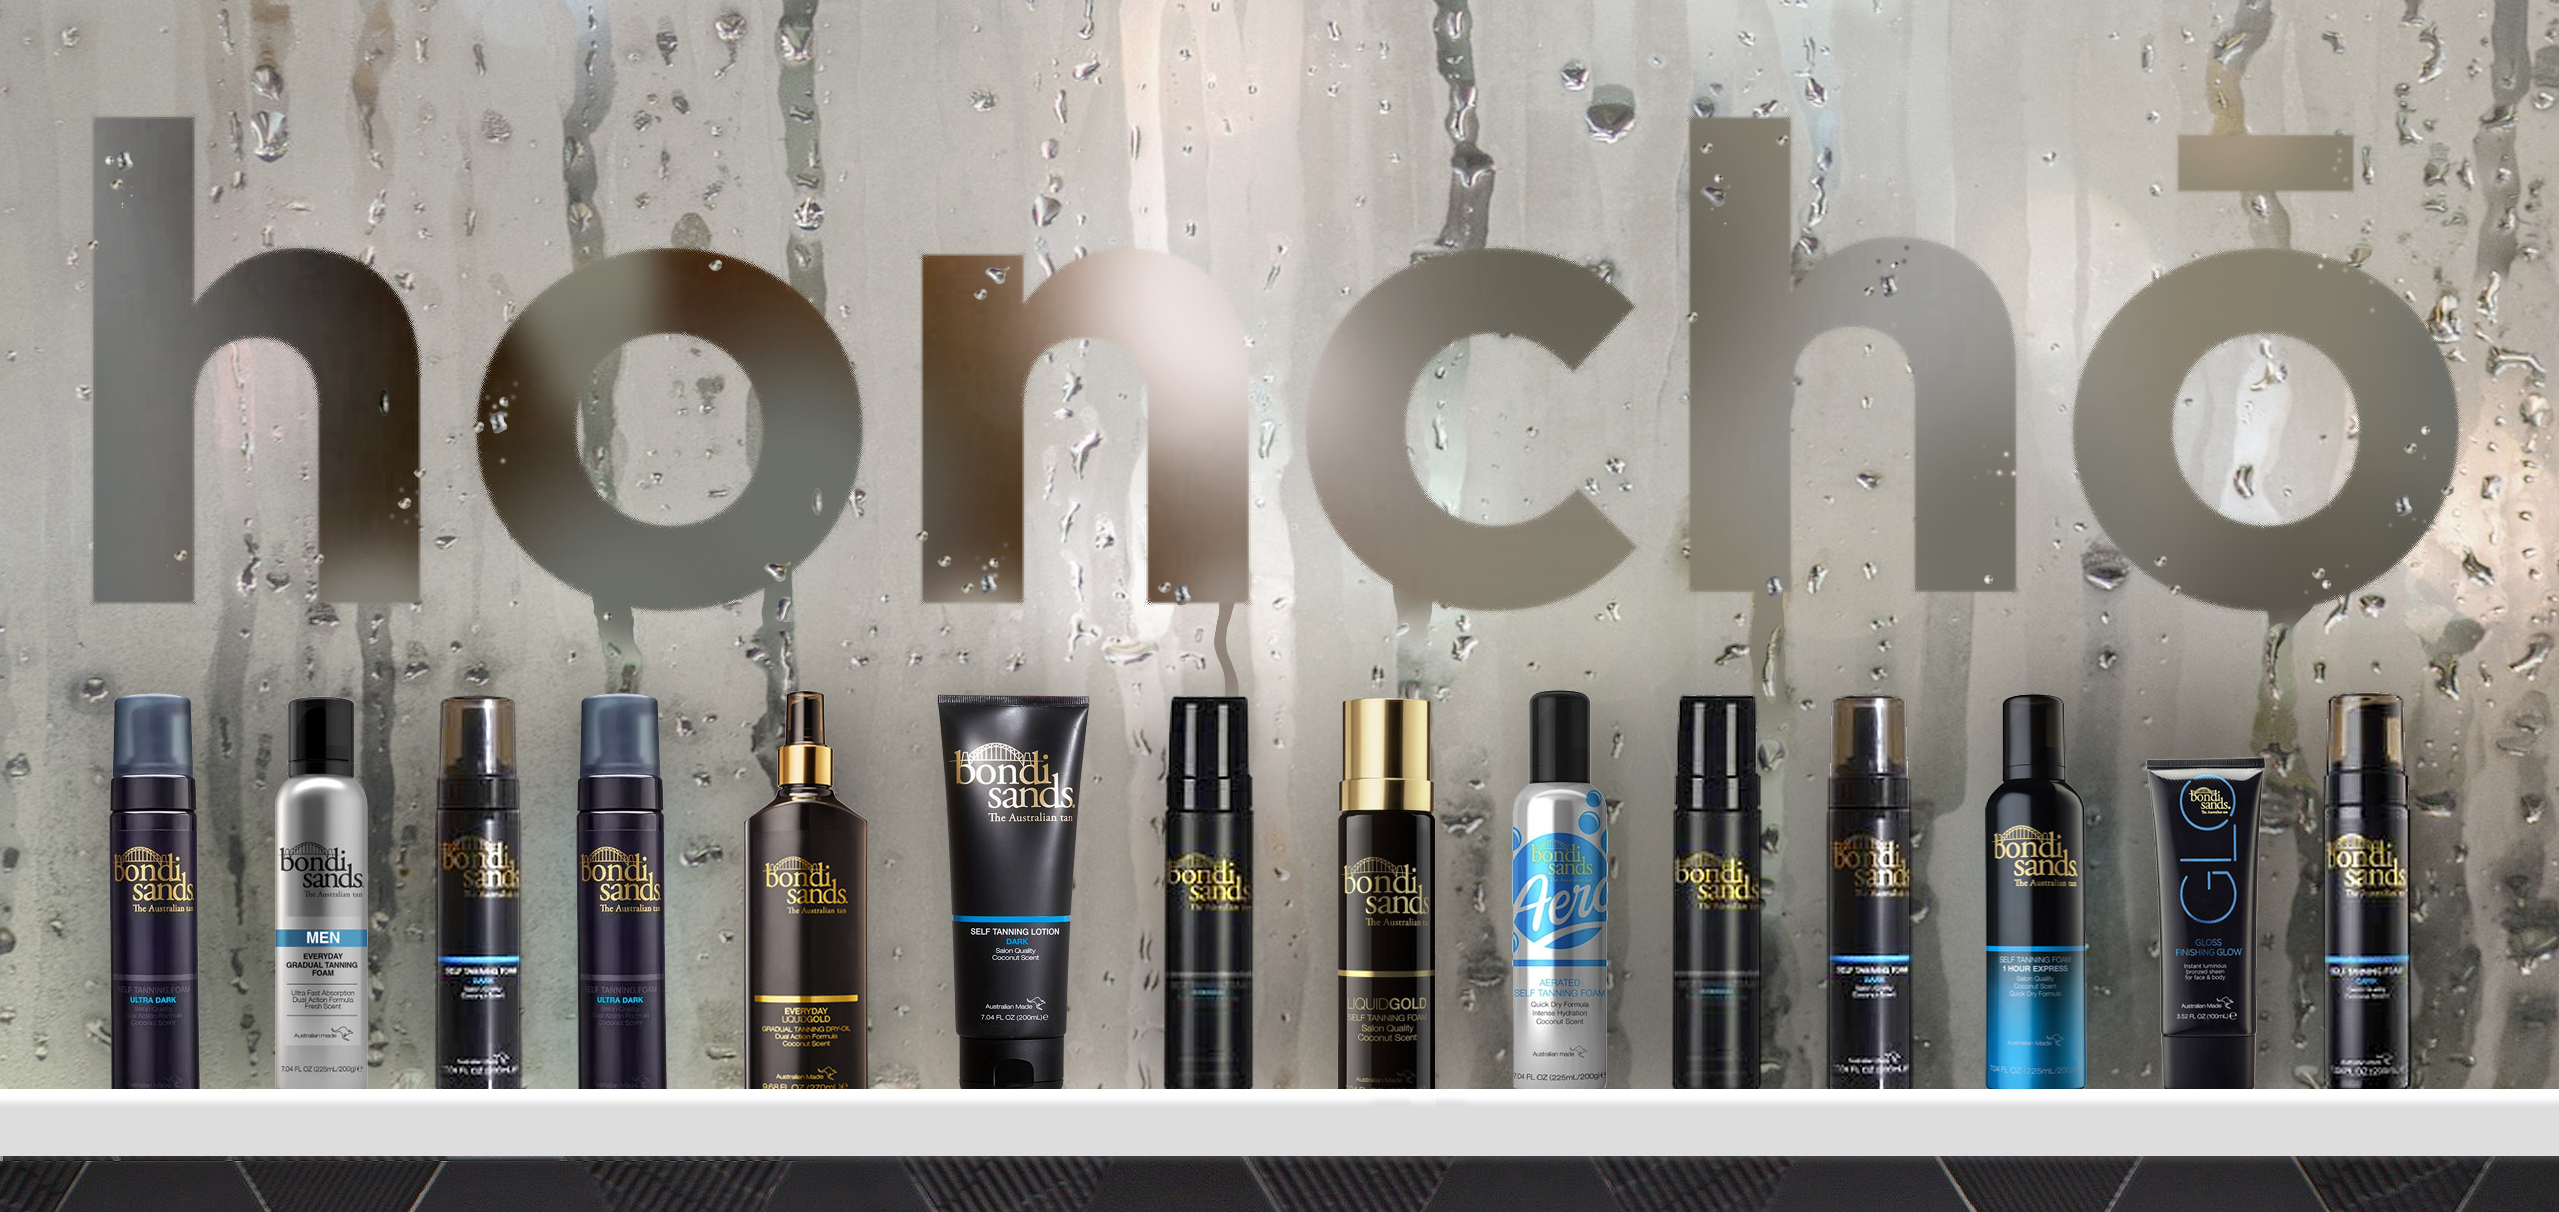 Australian beauty brand Bondi Sands selects Honchō as global SEO agency partner